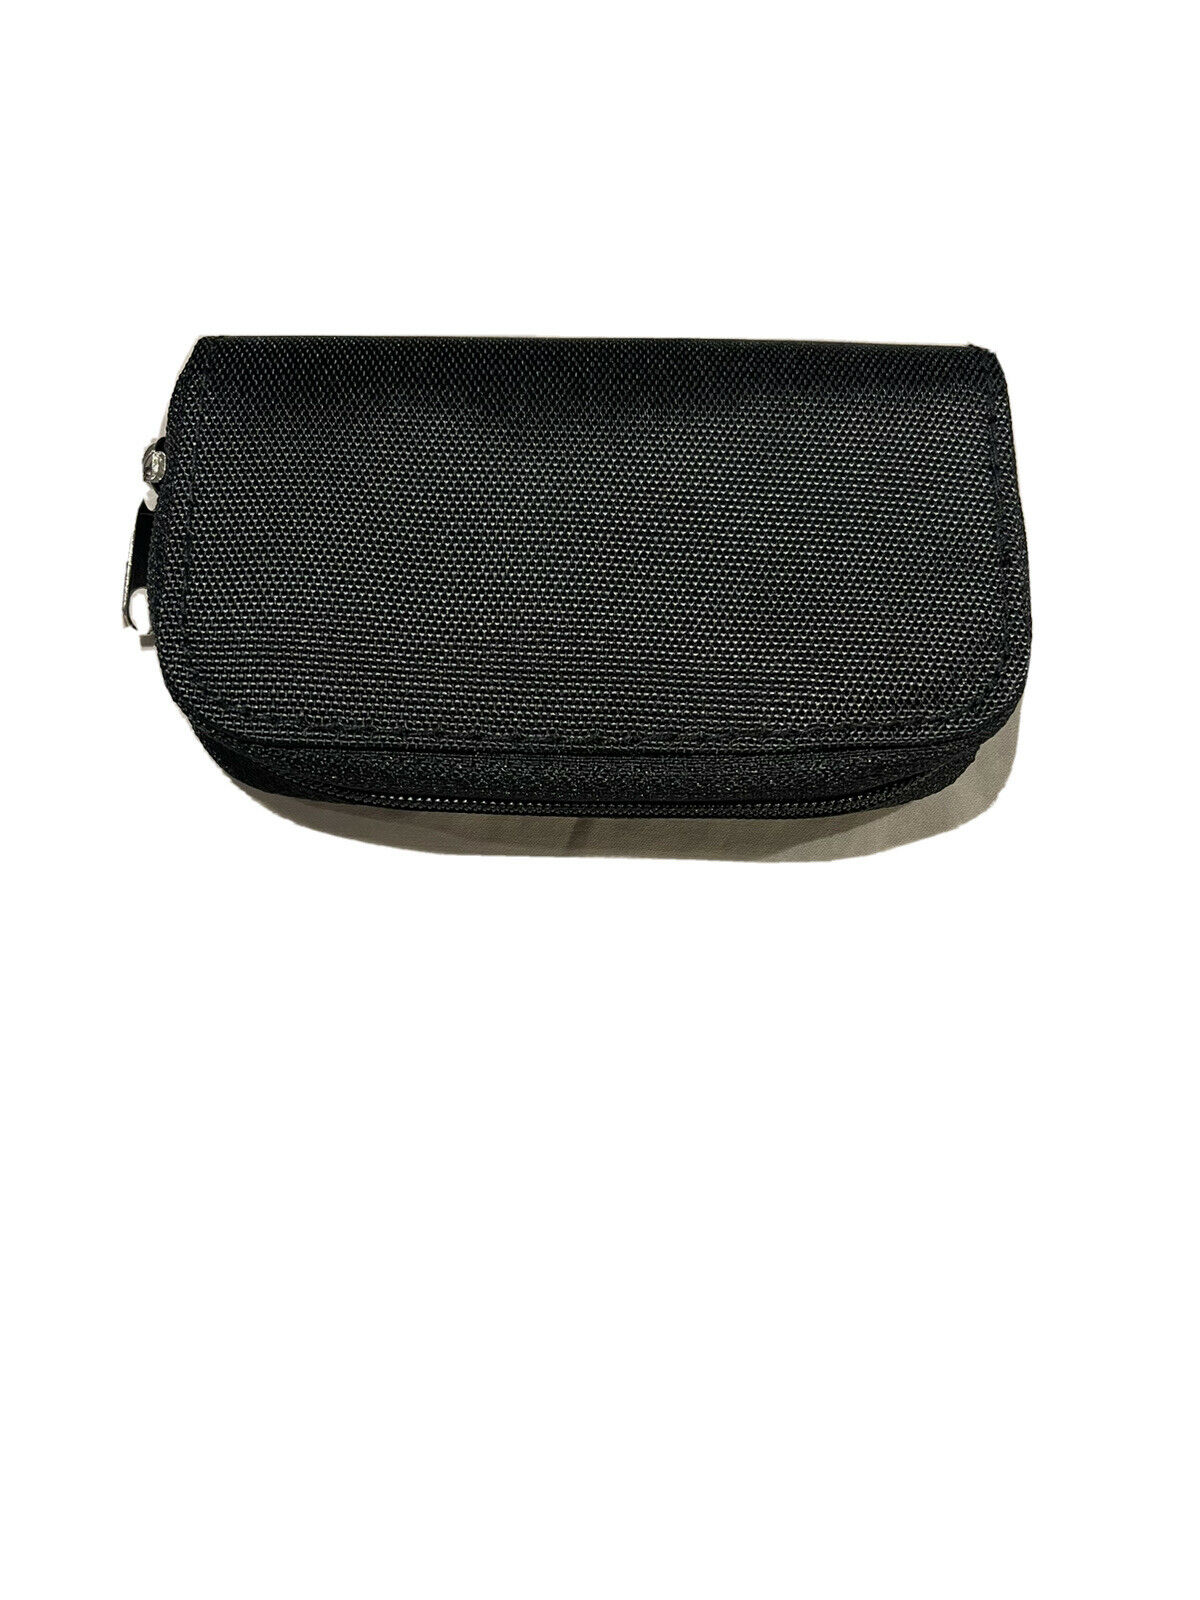 Memory Card Storage Bag Carrying Case Holder Mesh 22 Slots for SD/Micro SD Cards